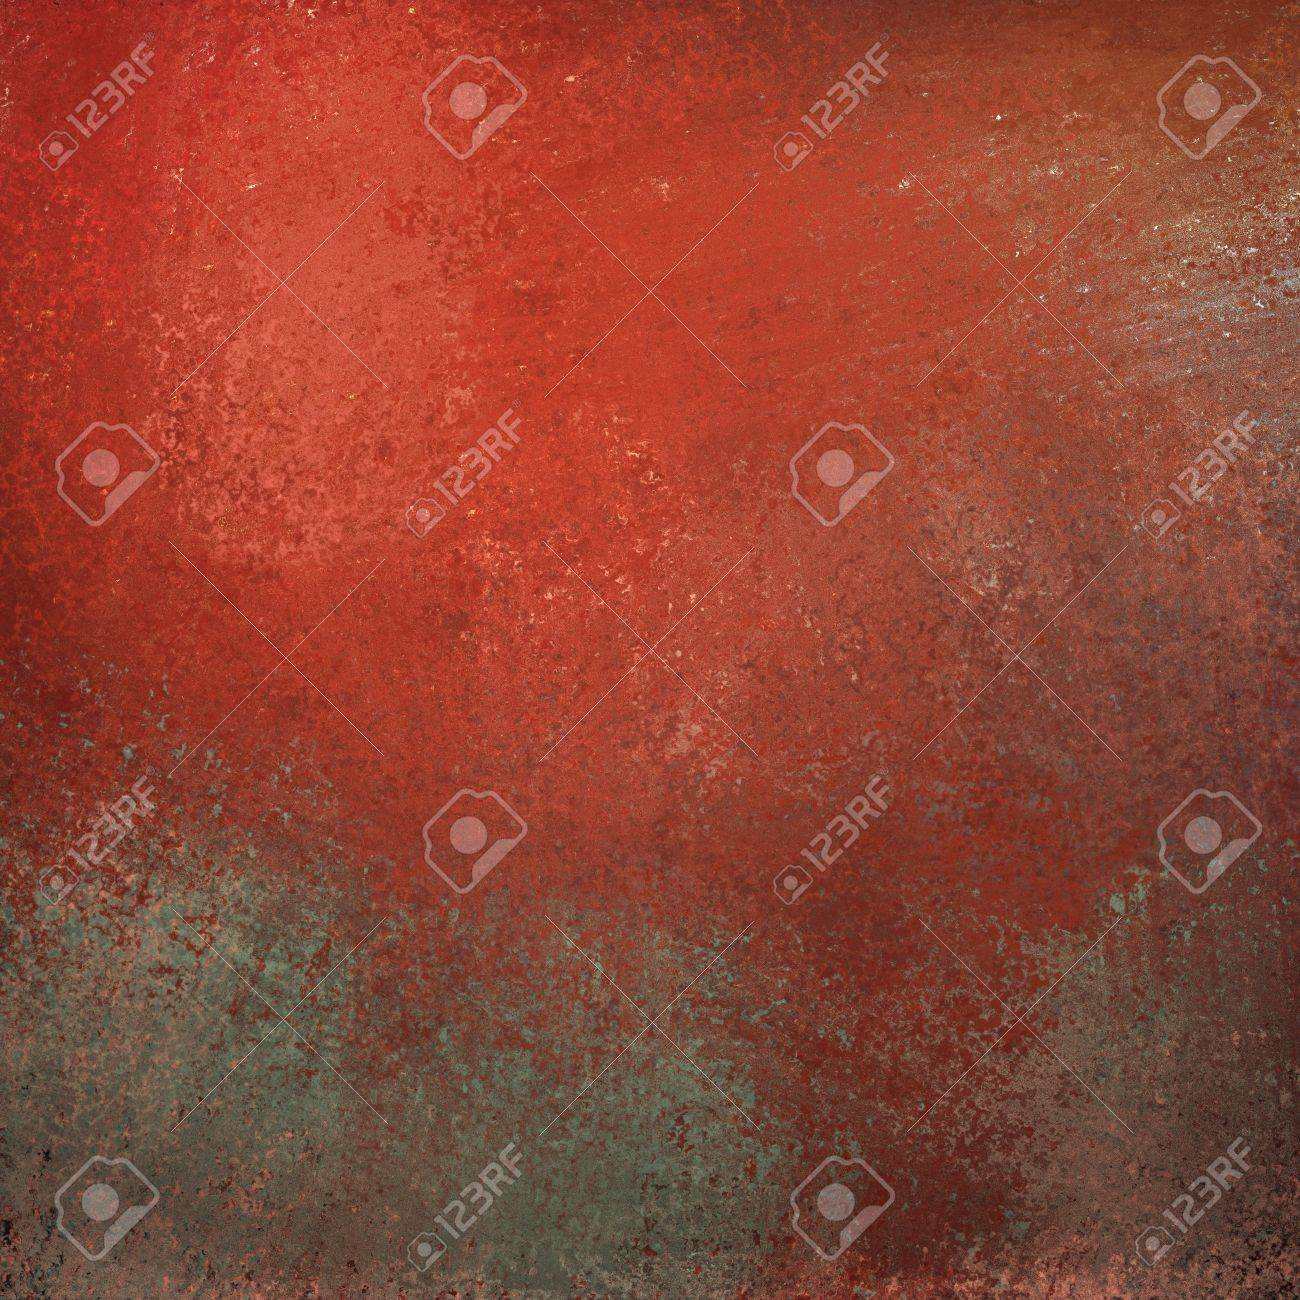 red background with graffiti grunge vintage texture and bright highlight on gray stone illustration with copyspace for text or title Stock Illustration - 12865969